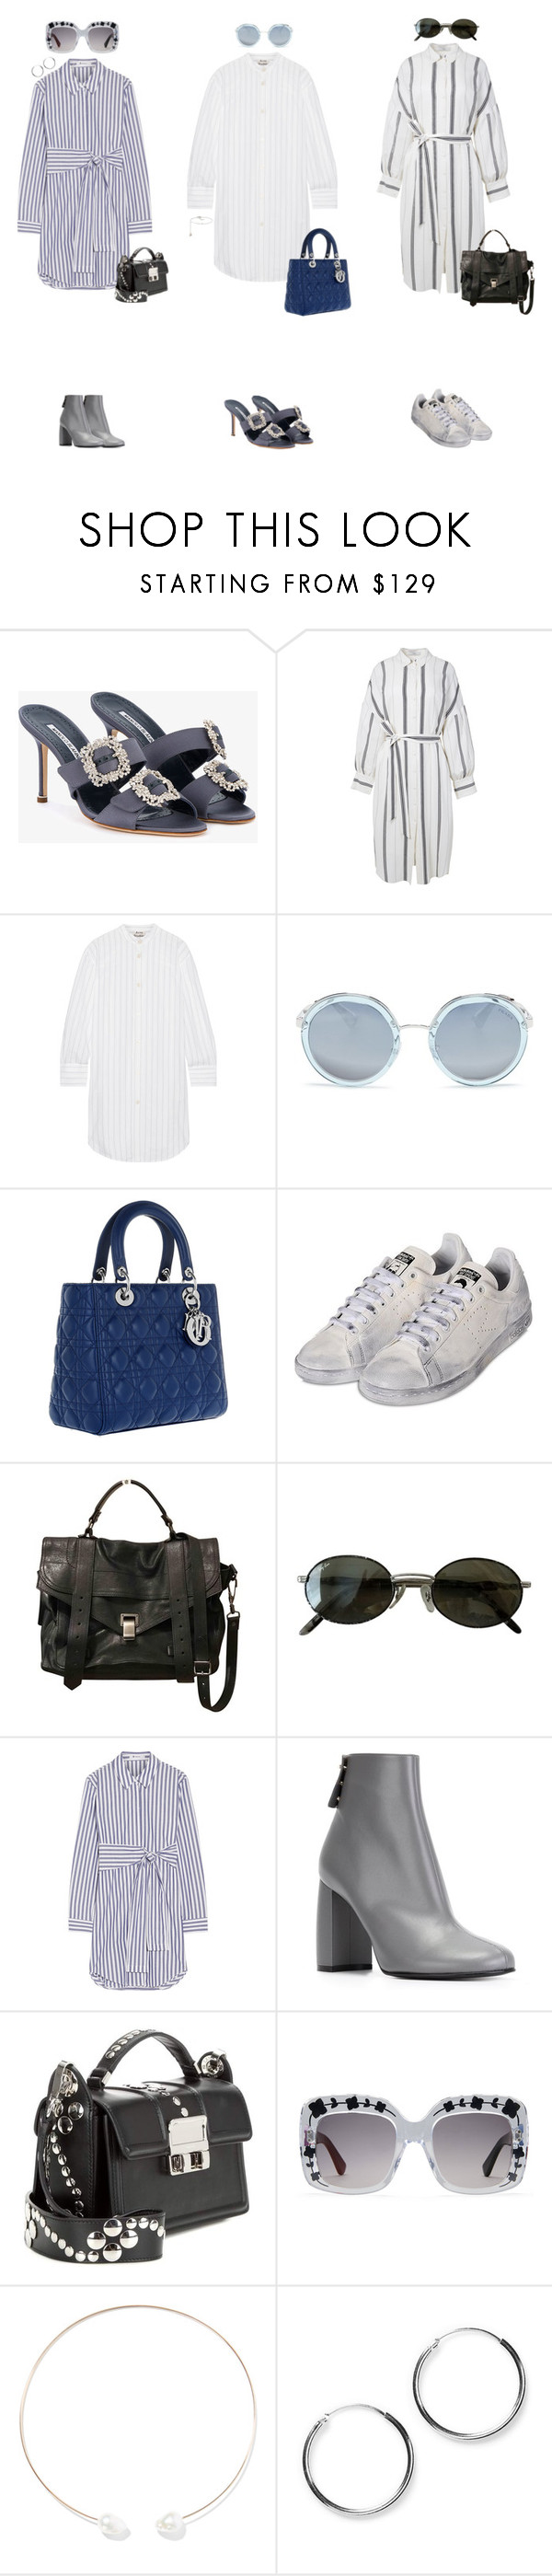 """shirtdress"" by julie-elisabeth-thrane ❤ liked on Polyvore featuring Manolo Blahnik, TIBI, Acne Studios, Prada, Christian Dior, adidas, Proenza Schouler, Ray-Ban, T By Alexander Wang and STELLA McCARTNEY"